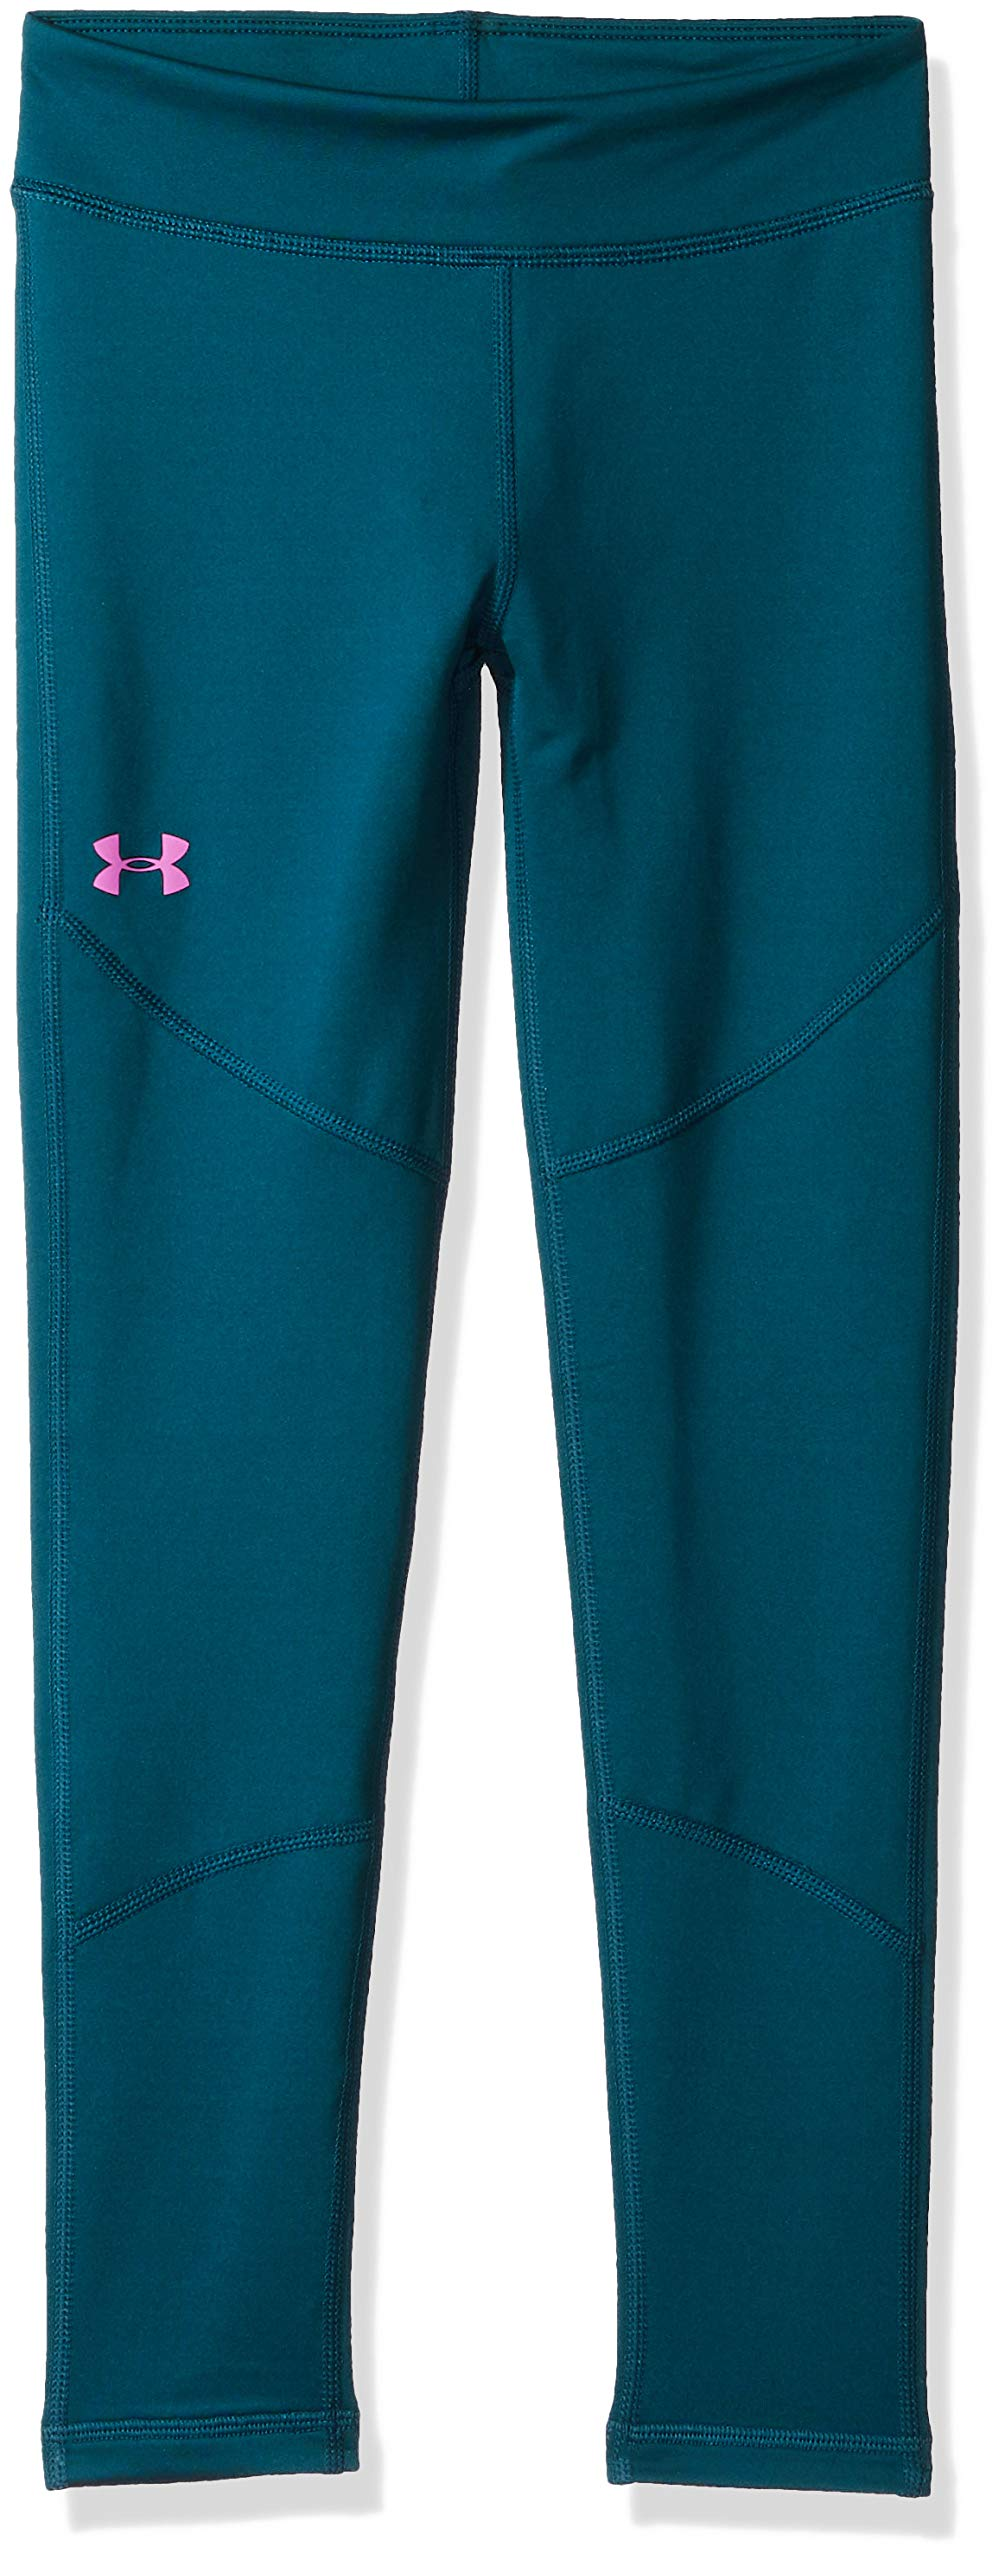 Under Armour Girls' Coldgear Leggings, Techno Teal (489)/Fluo Fuchsia, Youth Large